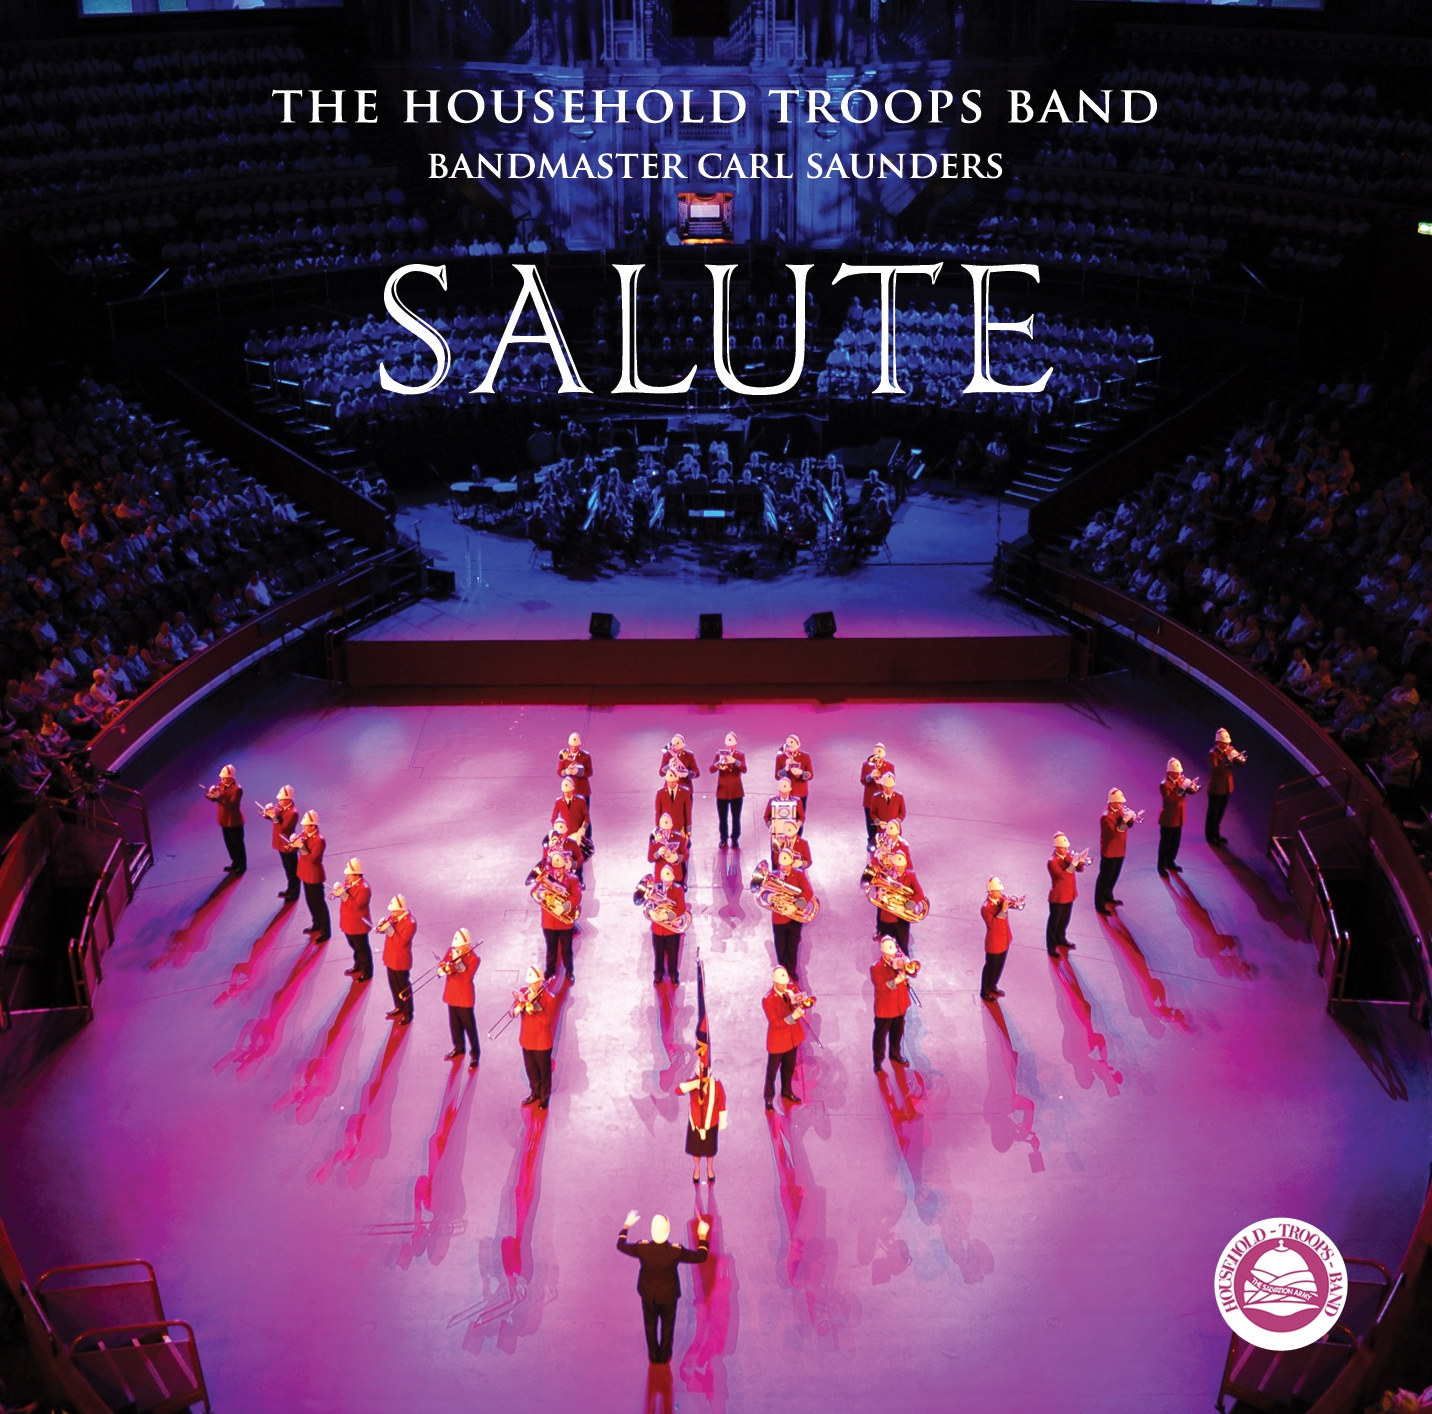 Salute - Download